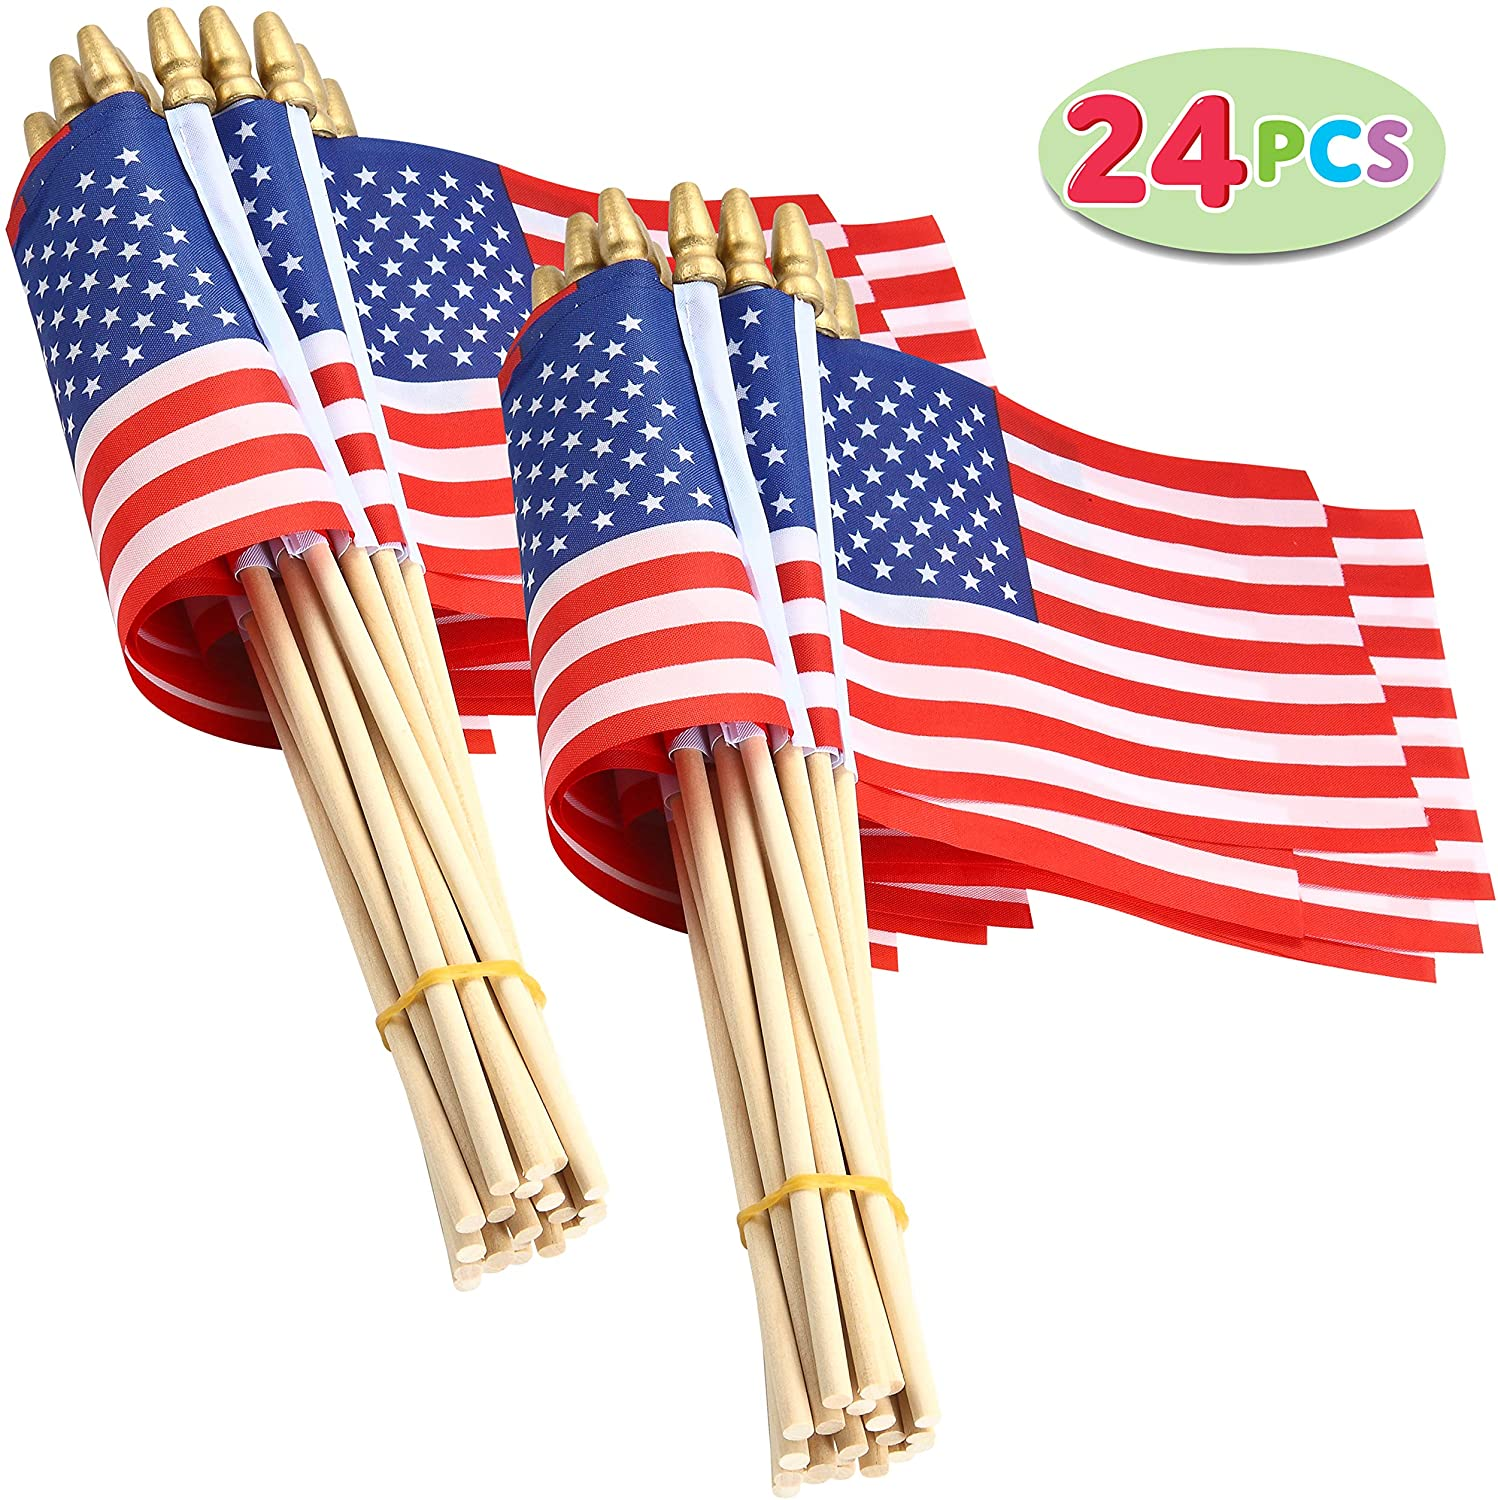 24 Piece, Wooden Stick Handheld American Flag